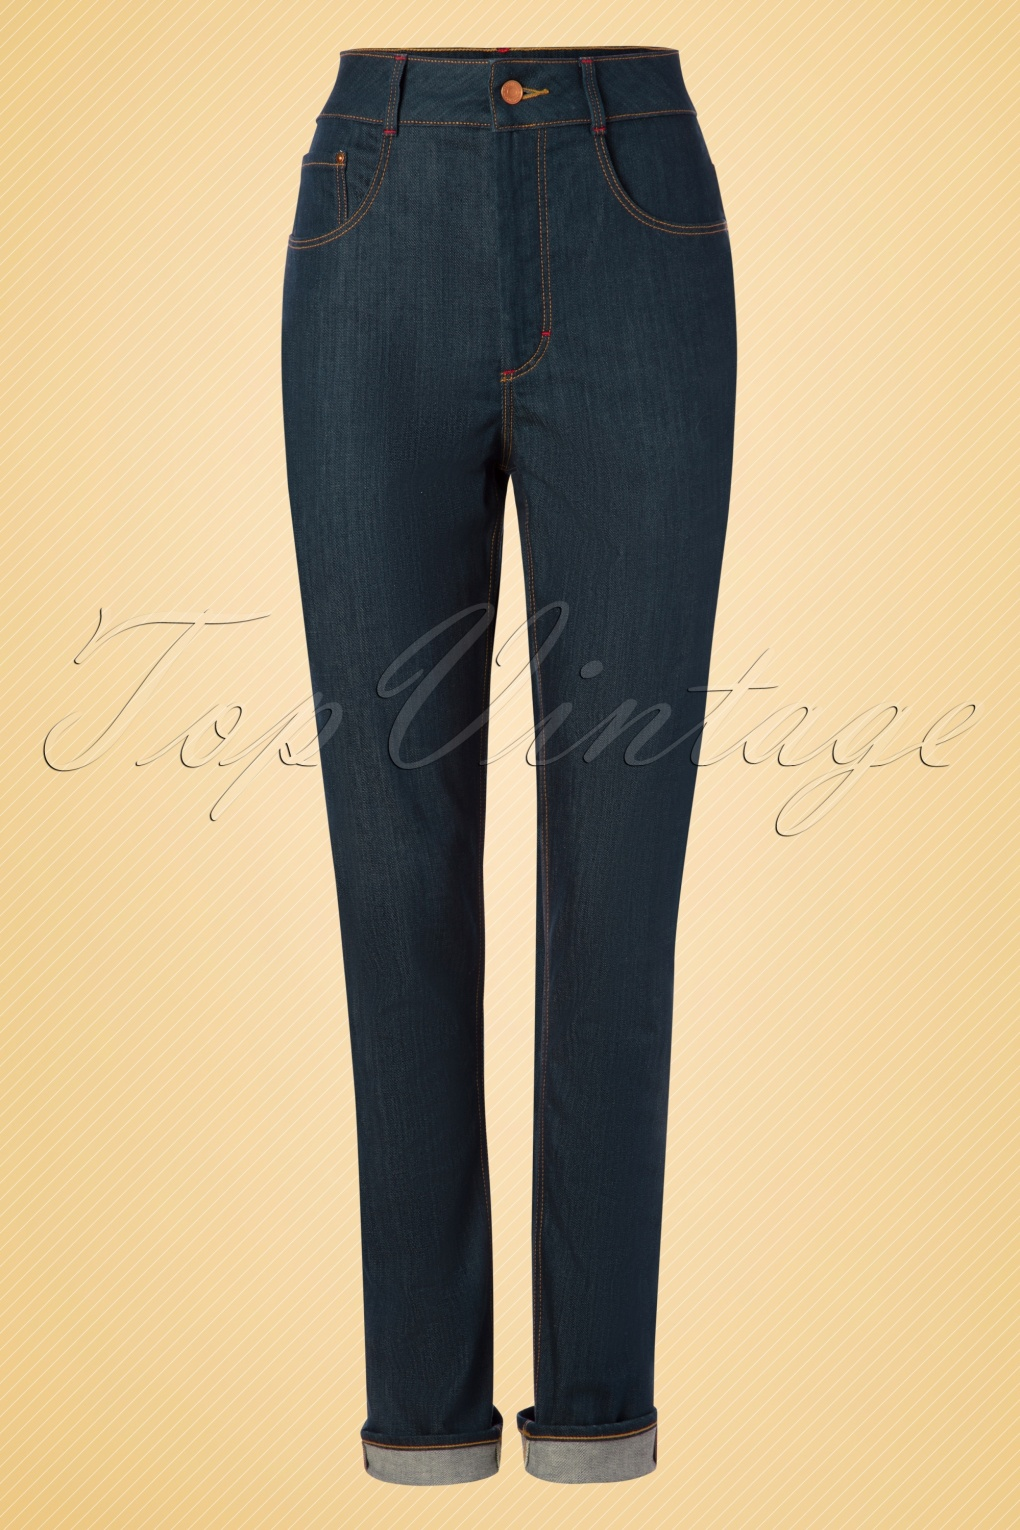 1950s Pants & Jeans- High Waist, Wide Leg, Capri, Pedal Pushers 50s Cleo Jeans in Classy Blue £72.78 AT vintagedancer.com